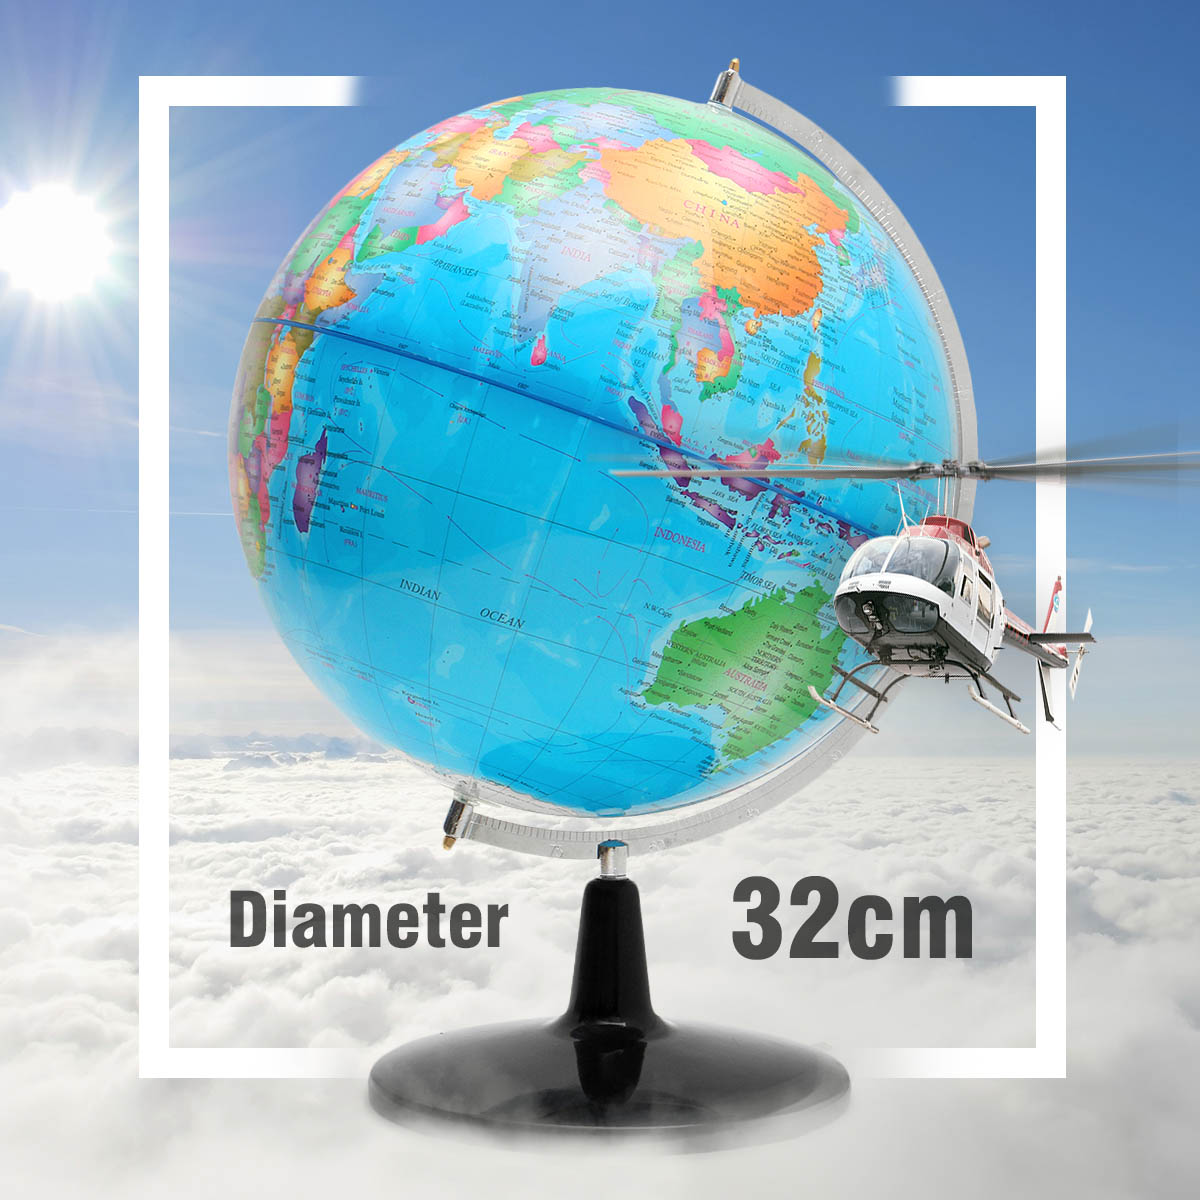 32CM Big Large Rotating Globe World Map of Earth Geography School Educational Tool Home Office Ornament Gift new led world map world globe rotating swivel map of earth geography globe figurines ornaments birthday gift home office decor